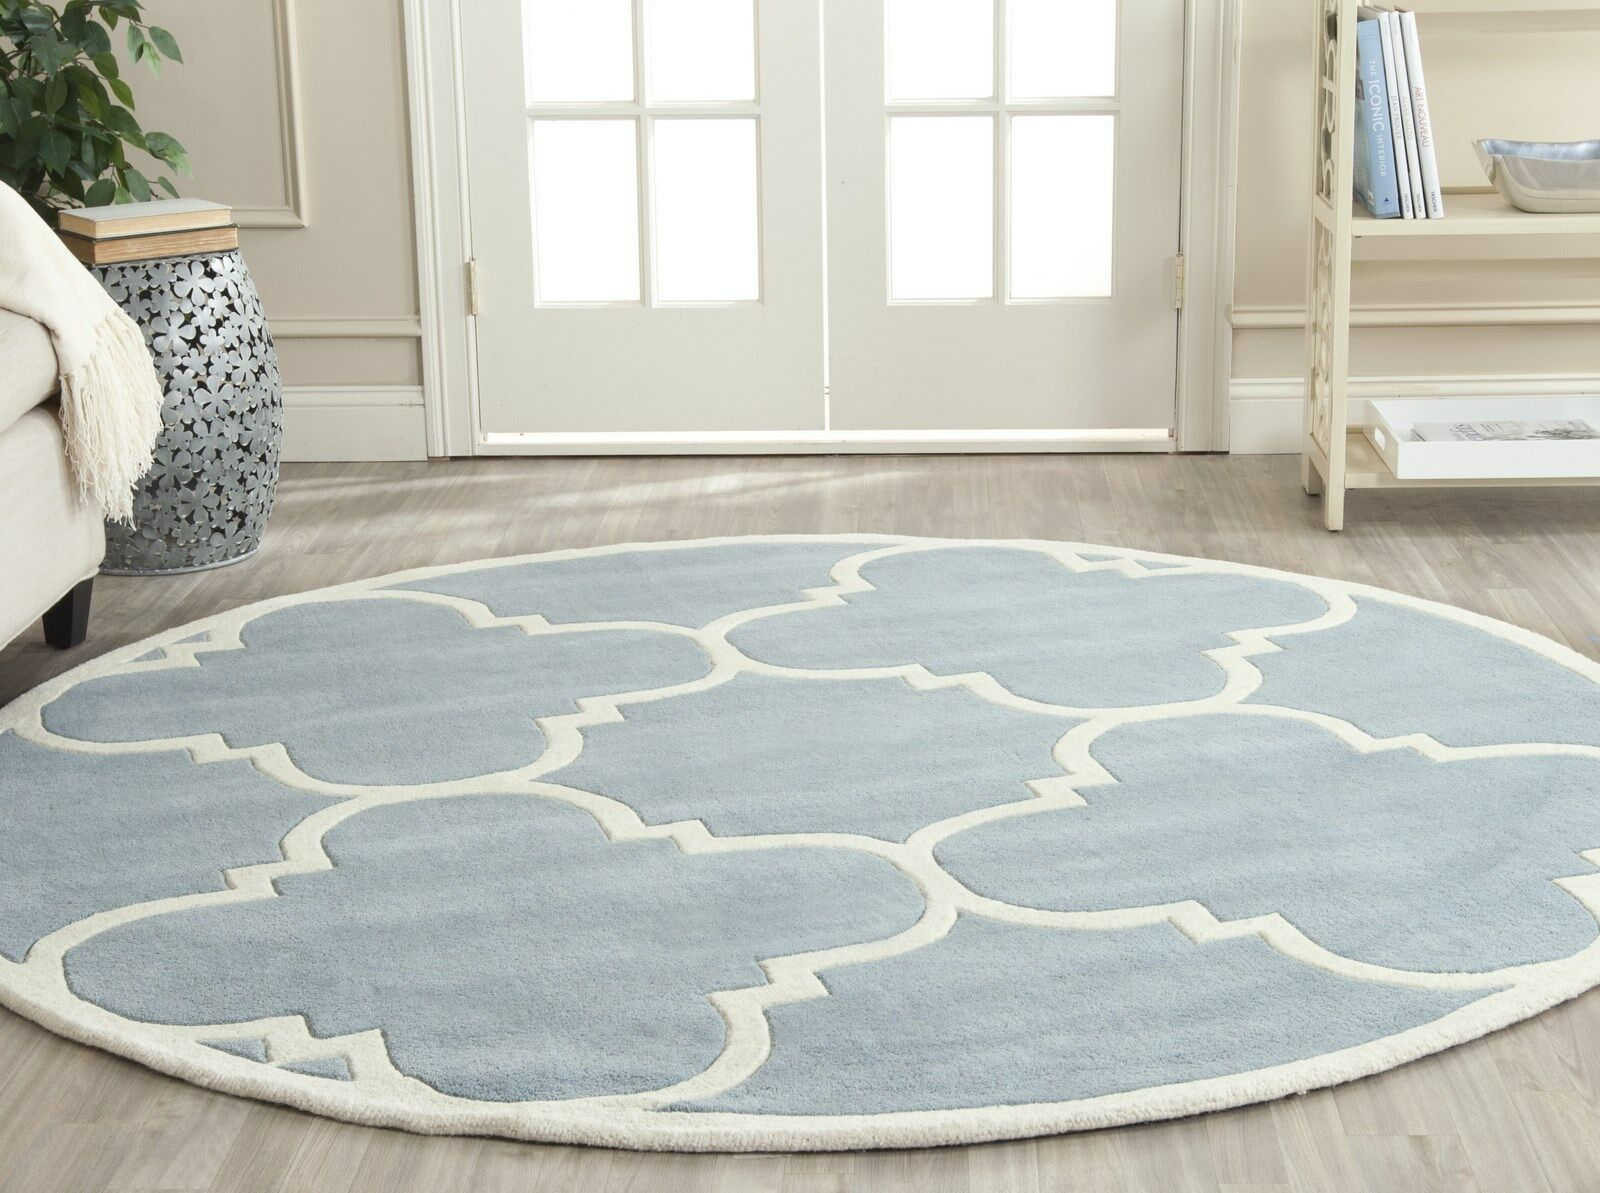 Wilkin Hand-Tufted Blue/Ivory Area Rug Rug Size: Round 7'